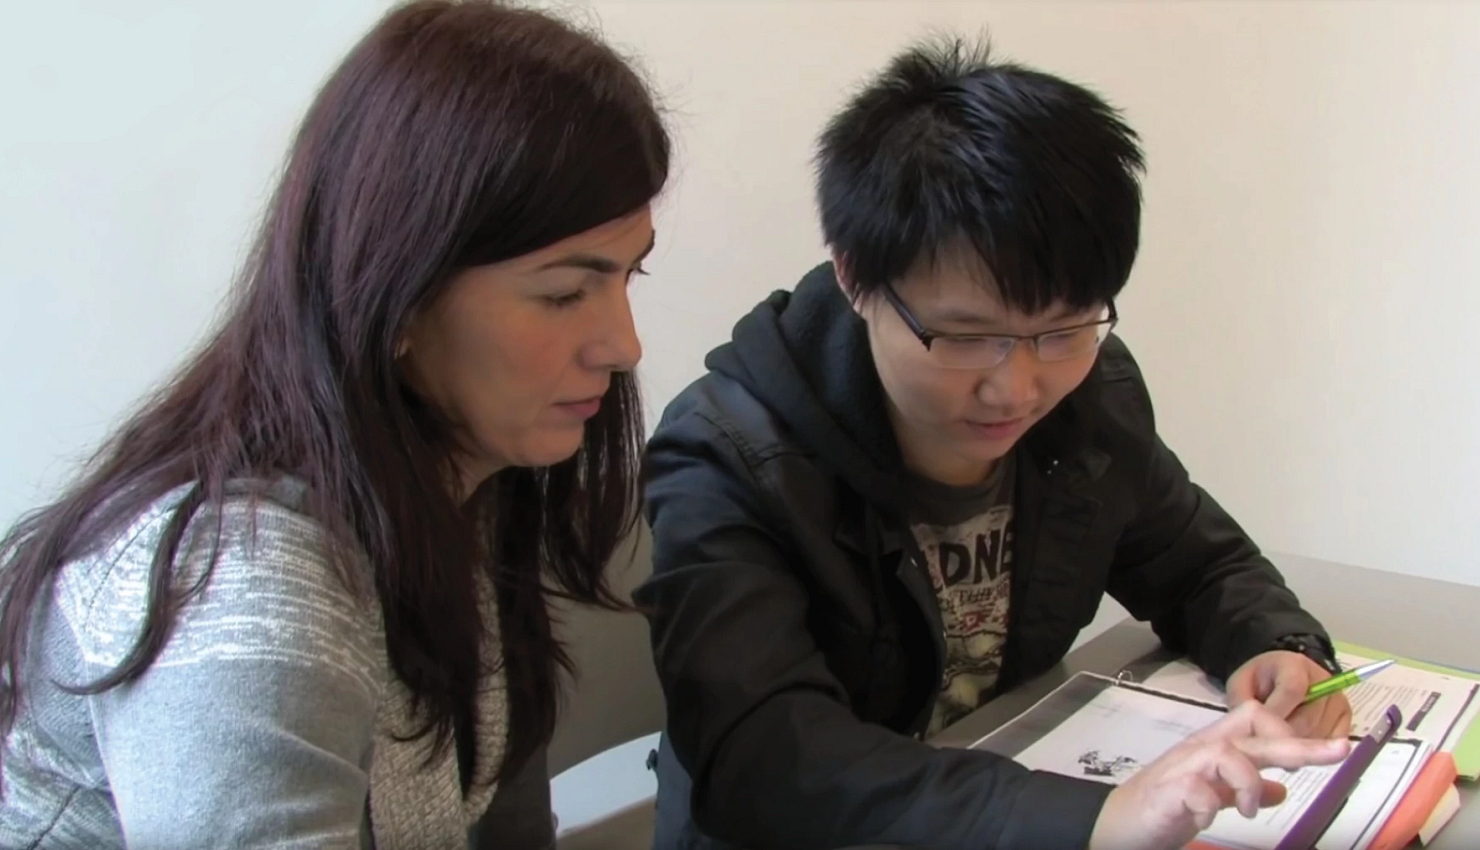 two people sitting at a desk looking at study notes